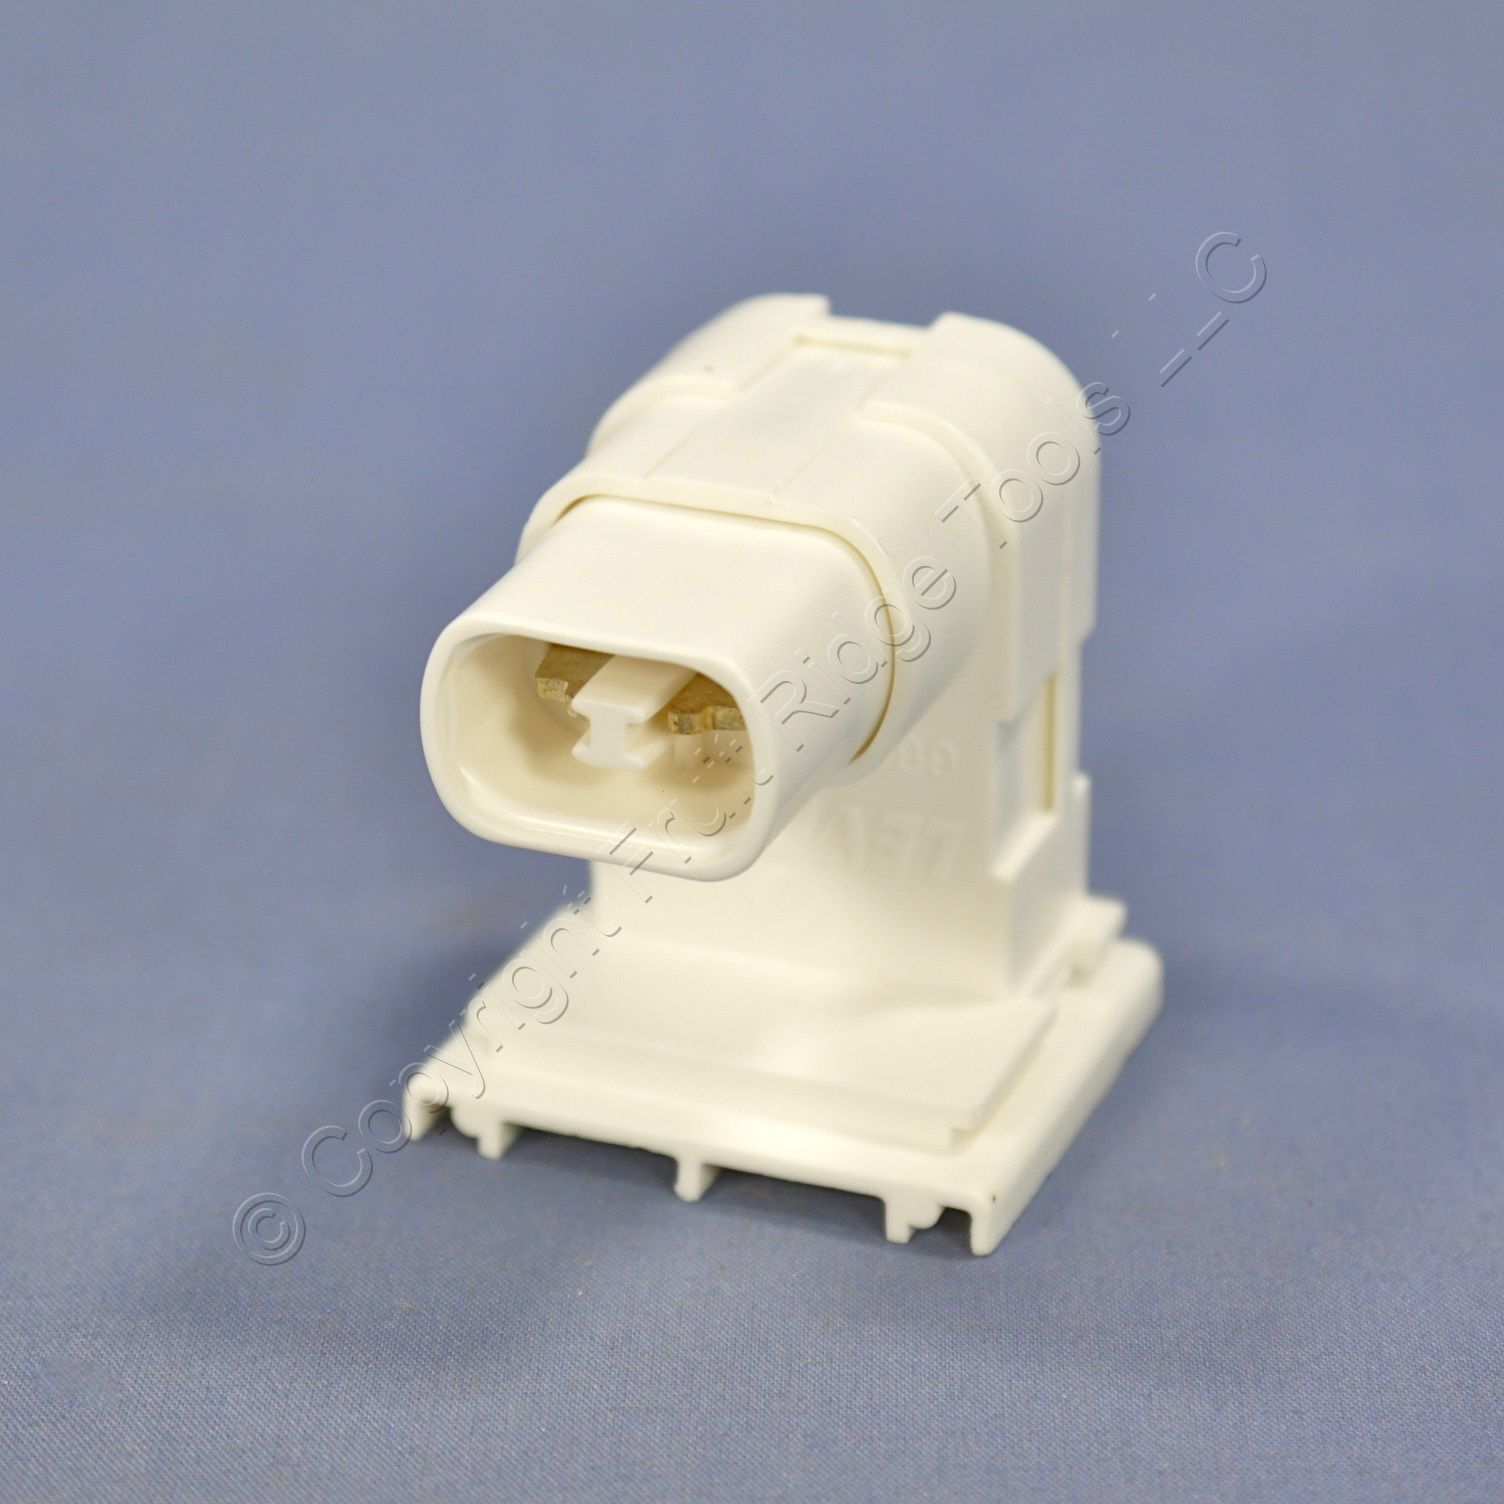 New leviton high output t8 t12 fluorescent light lamp holder socket new leviton high output t8 t12 fluorescent light lamp holder socket 13550 065 arubaitofo Image collections